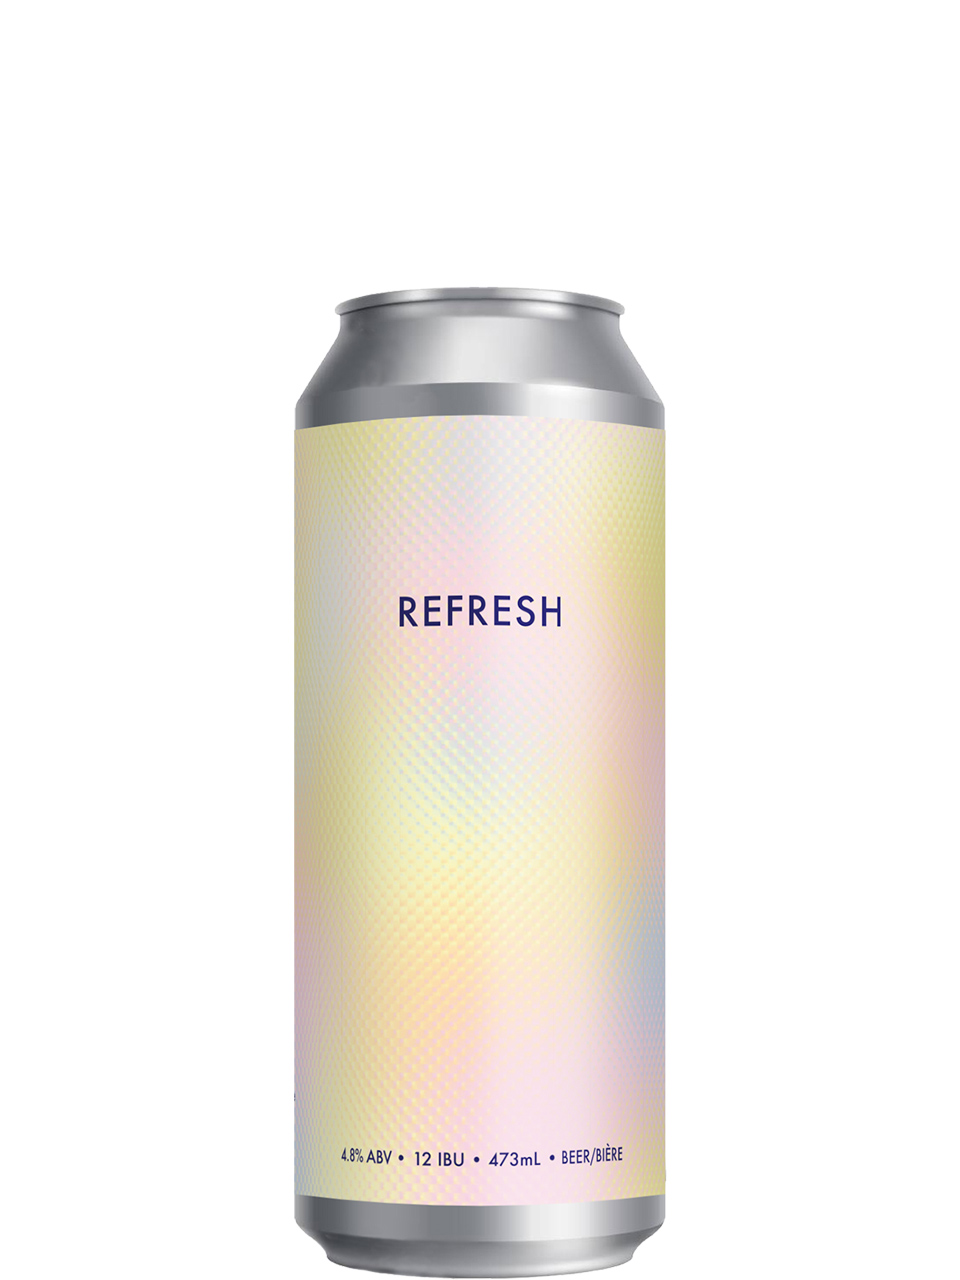 2 Crows Refresh Dry Hopped Lager 473ml Can